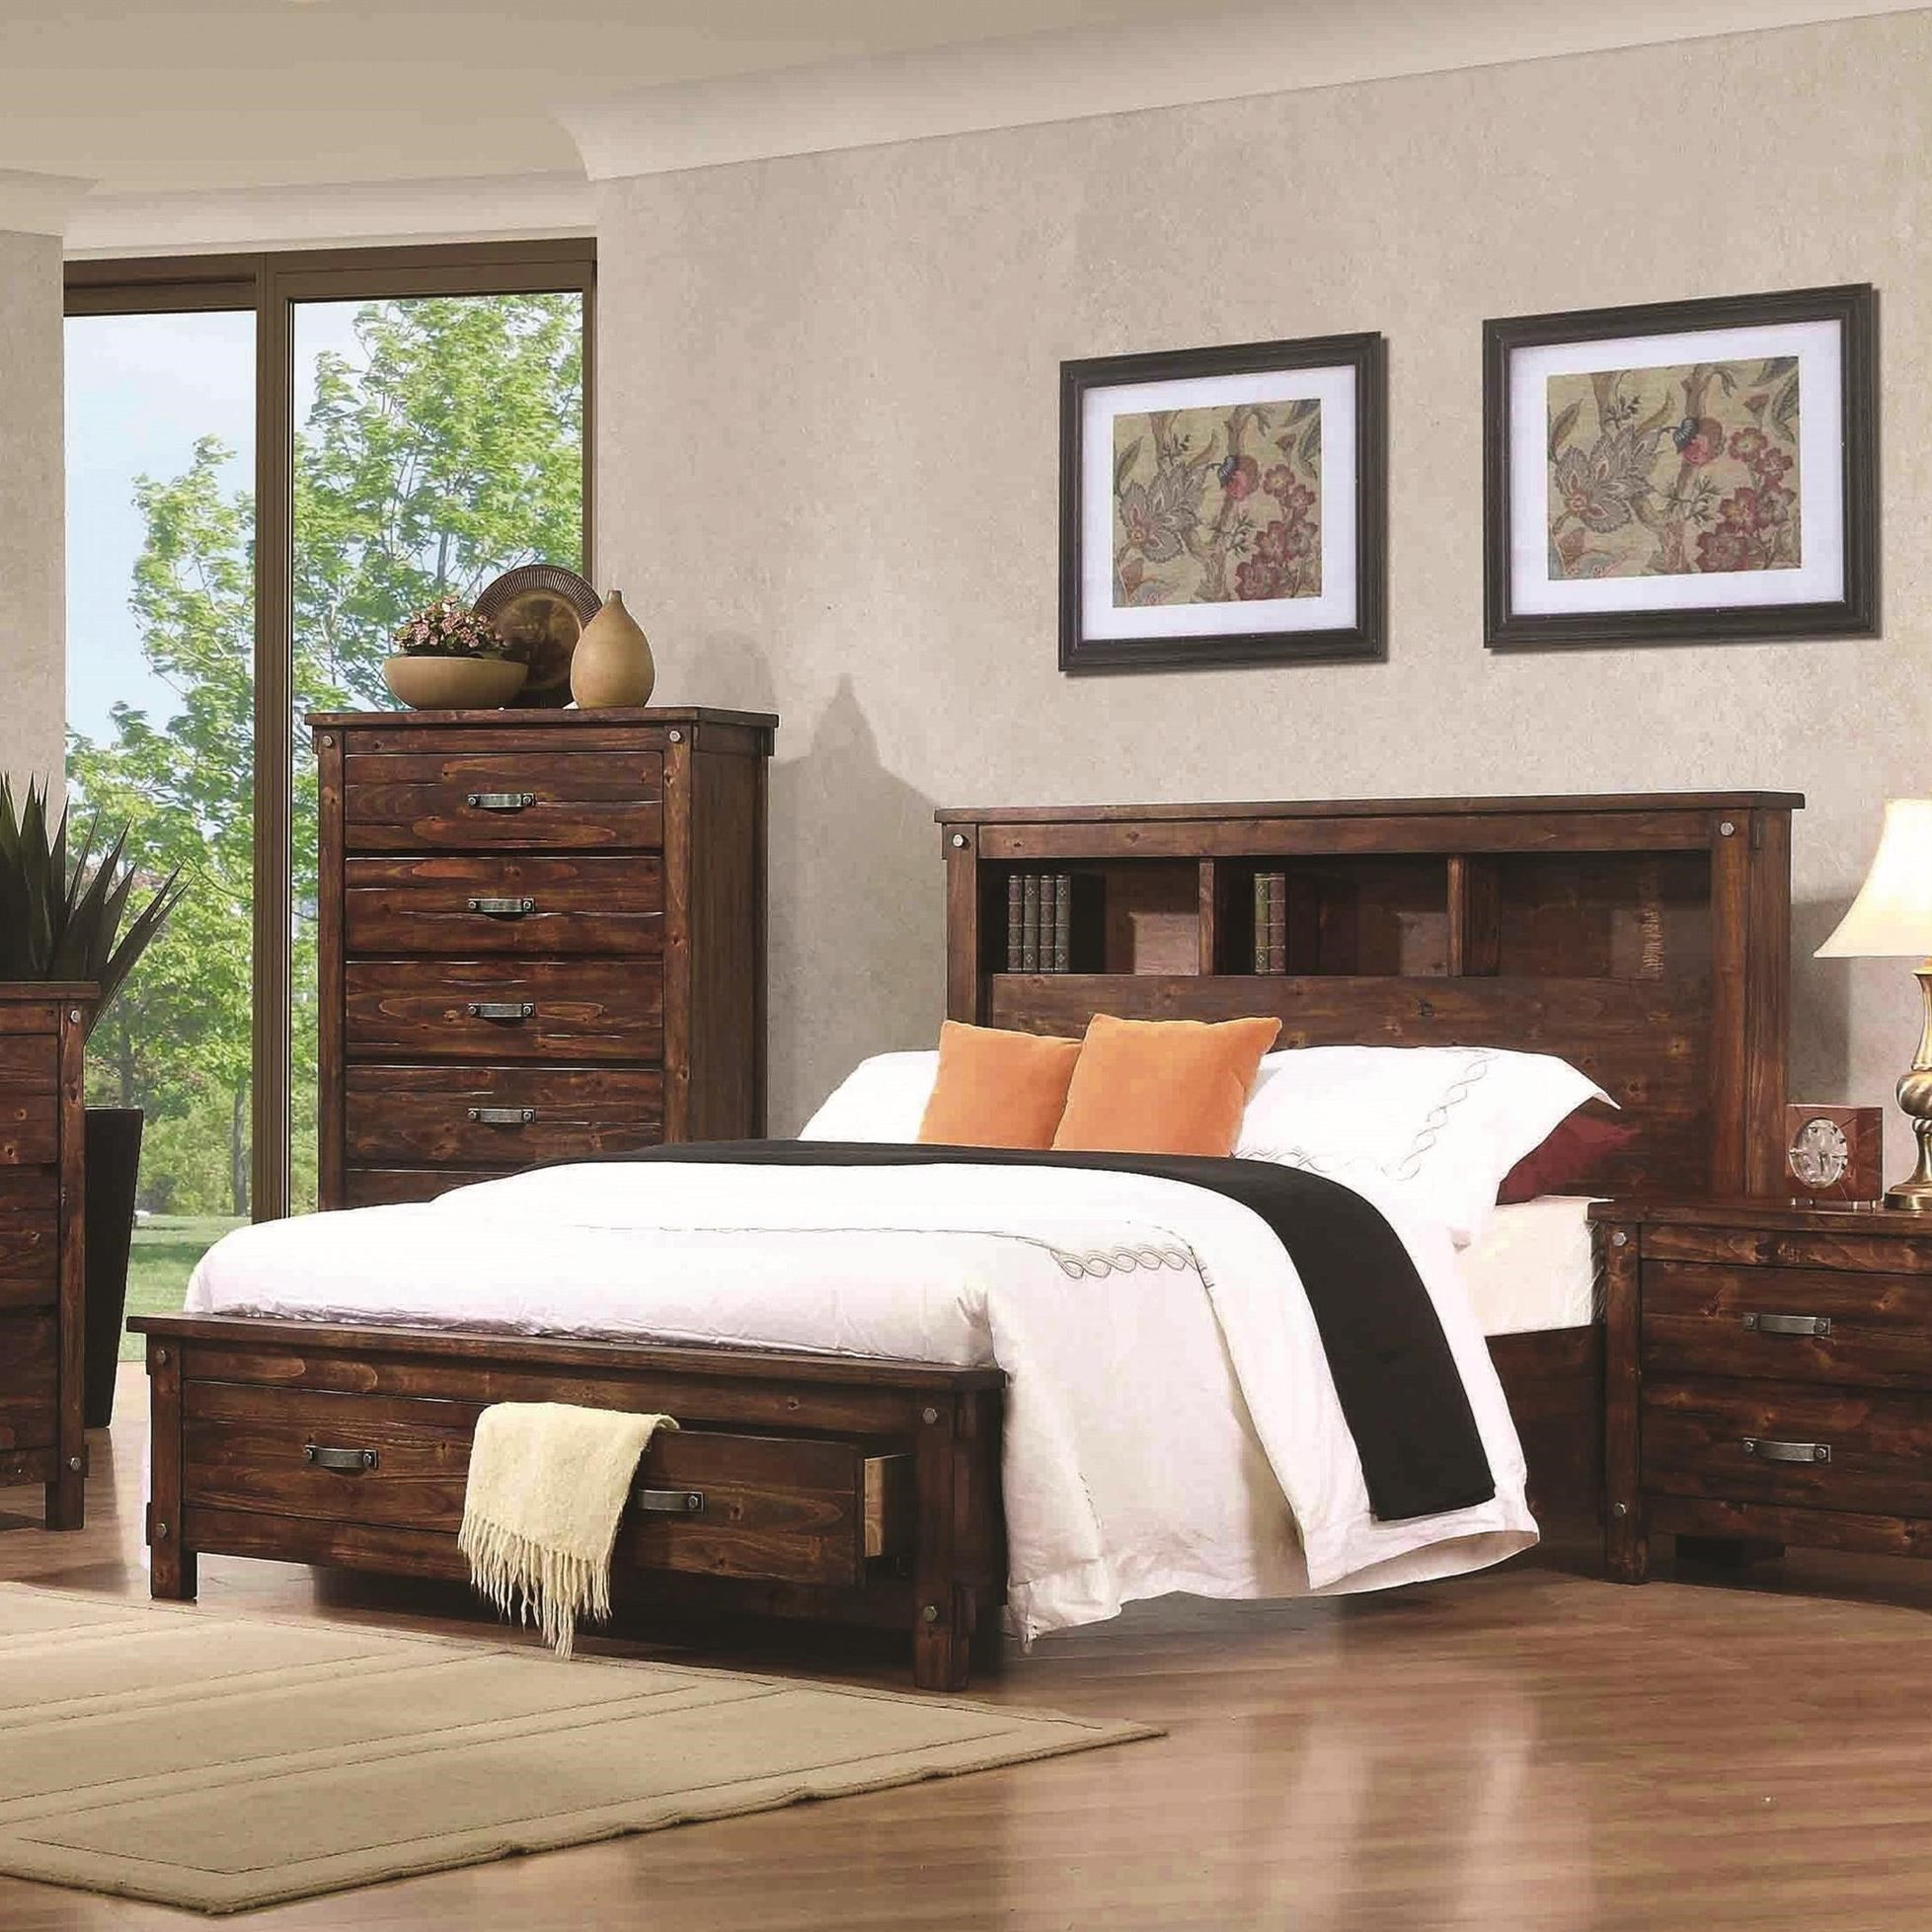 Cal King Bookcase Headboard: Noble California King Bookcase Bed